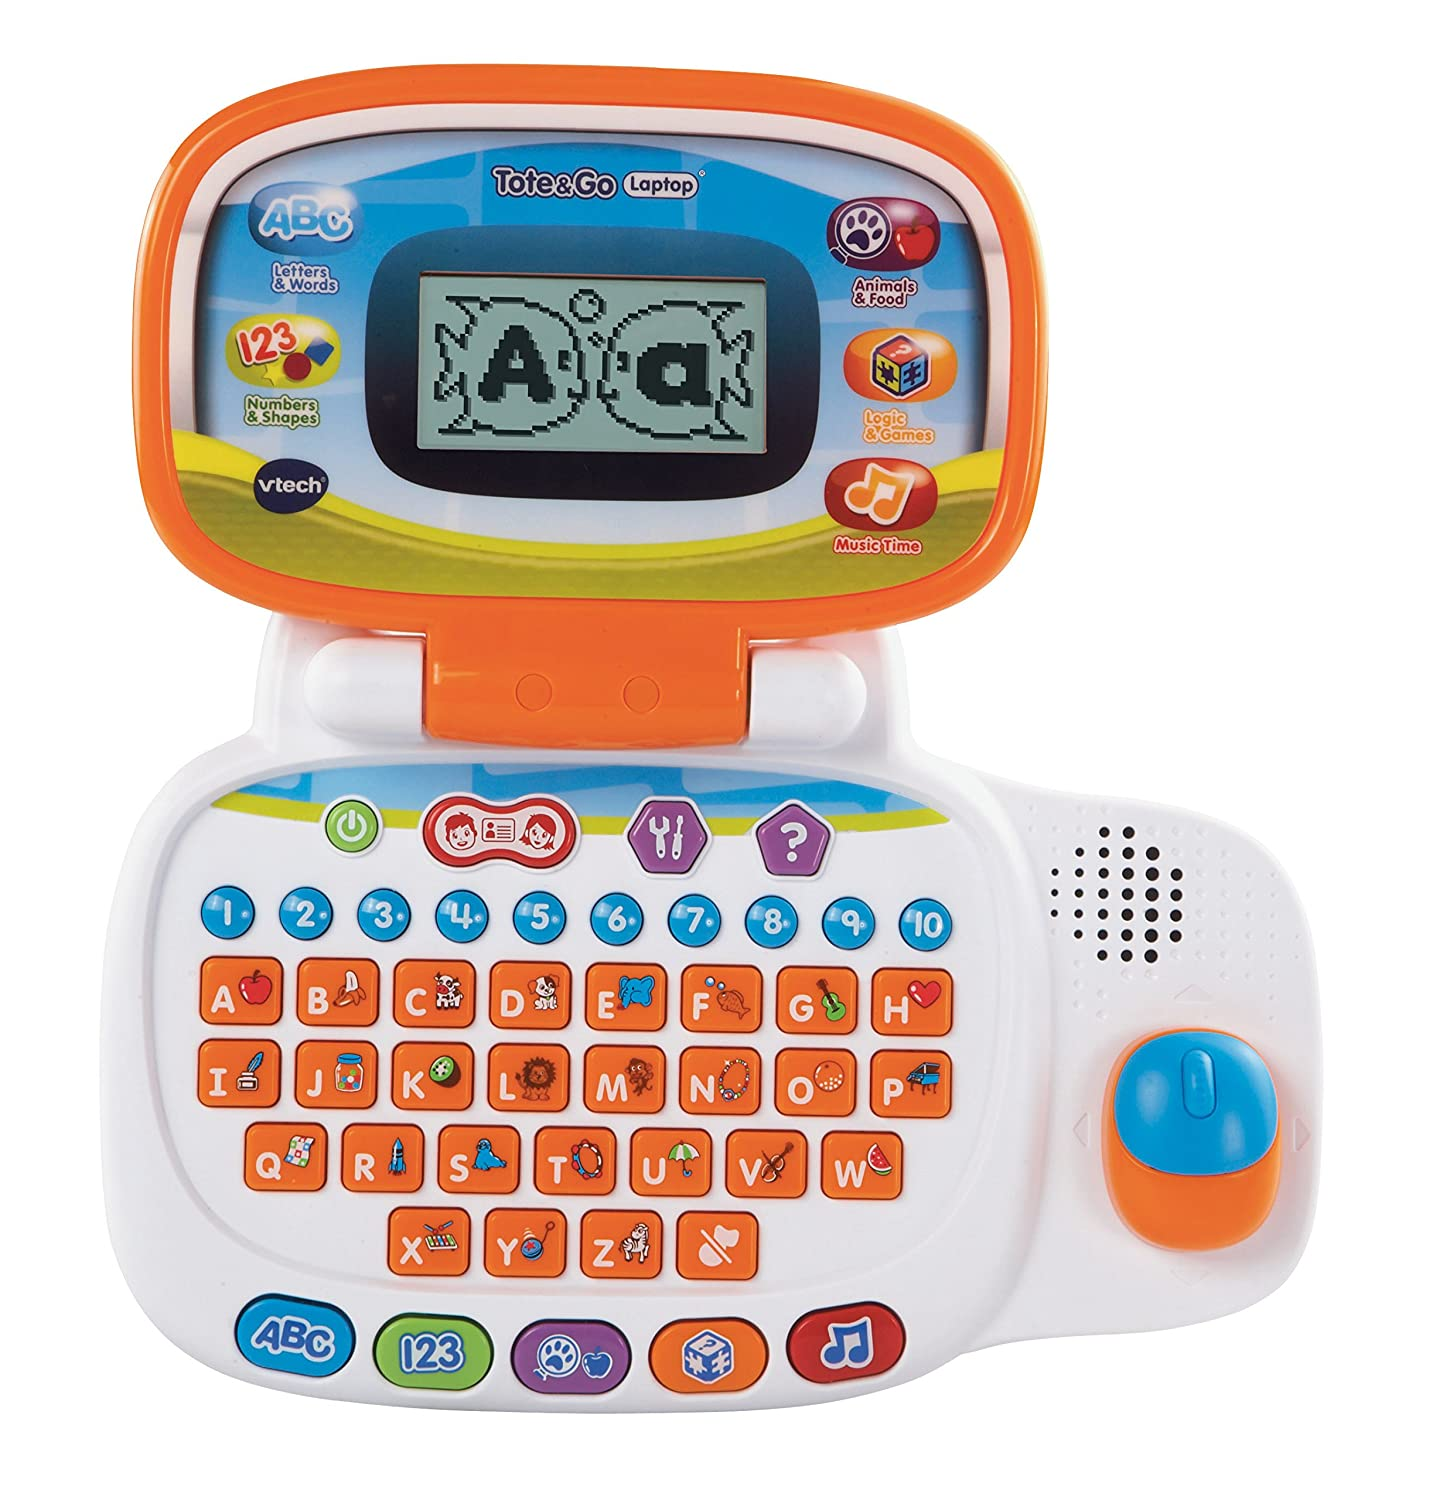 Toddler Laptop Toy Baby puter Kids Learning Activity Vtech